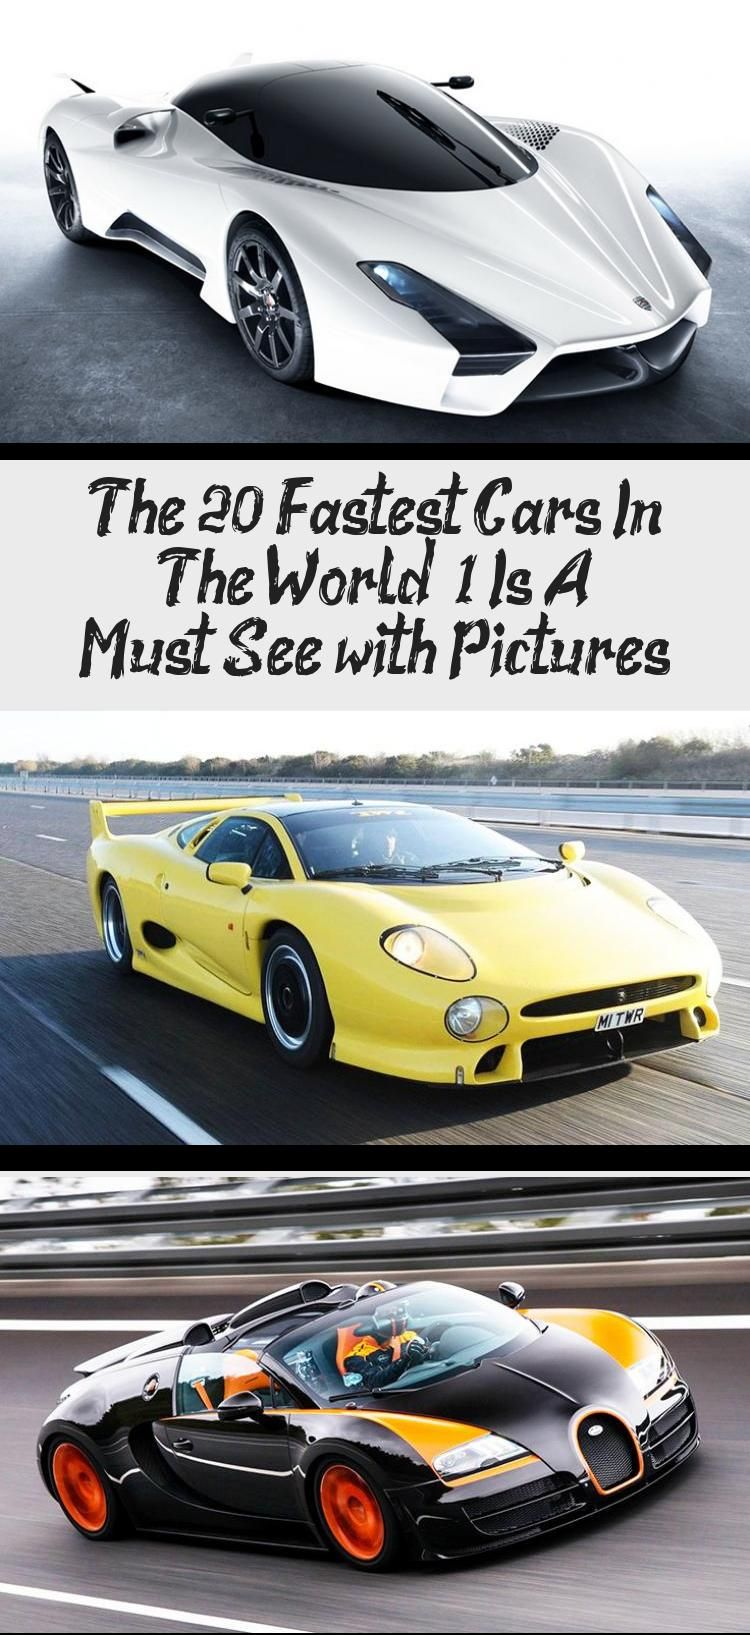 The 20 Fastest Cars In The World 1 Is A Must See With Pictures Car In 2020 Fast Cars Car In The World Bugatti Veyron Super Sport